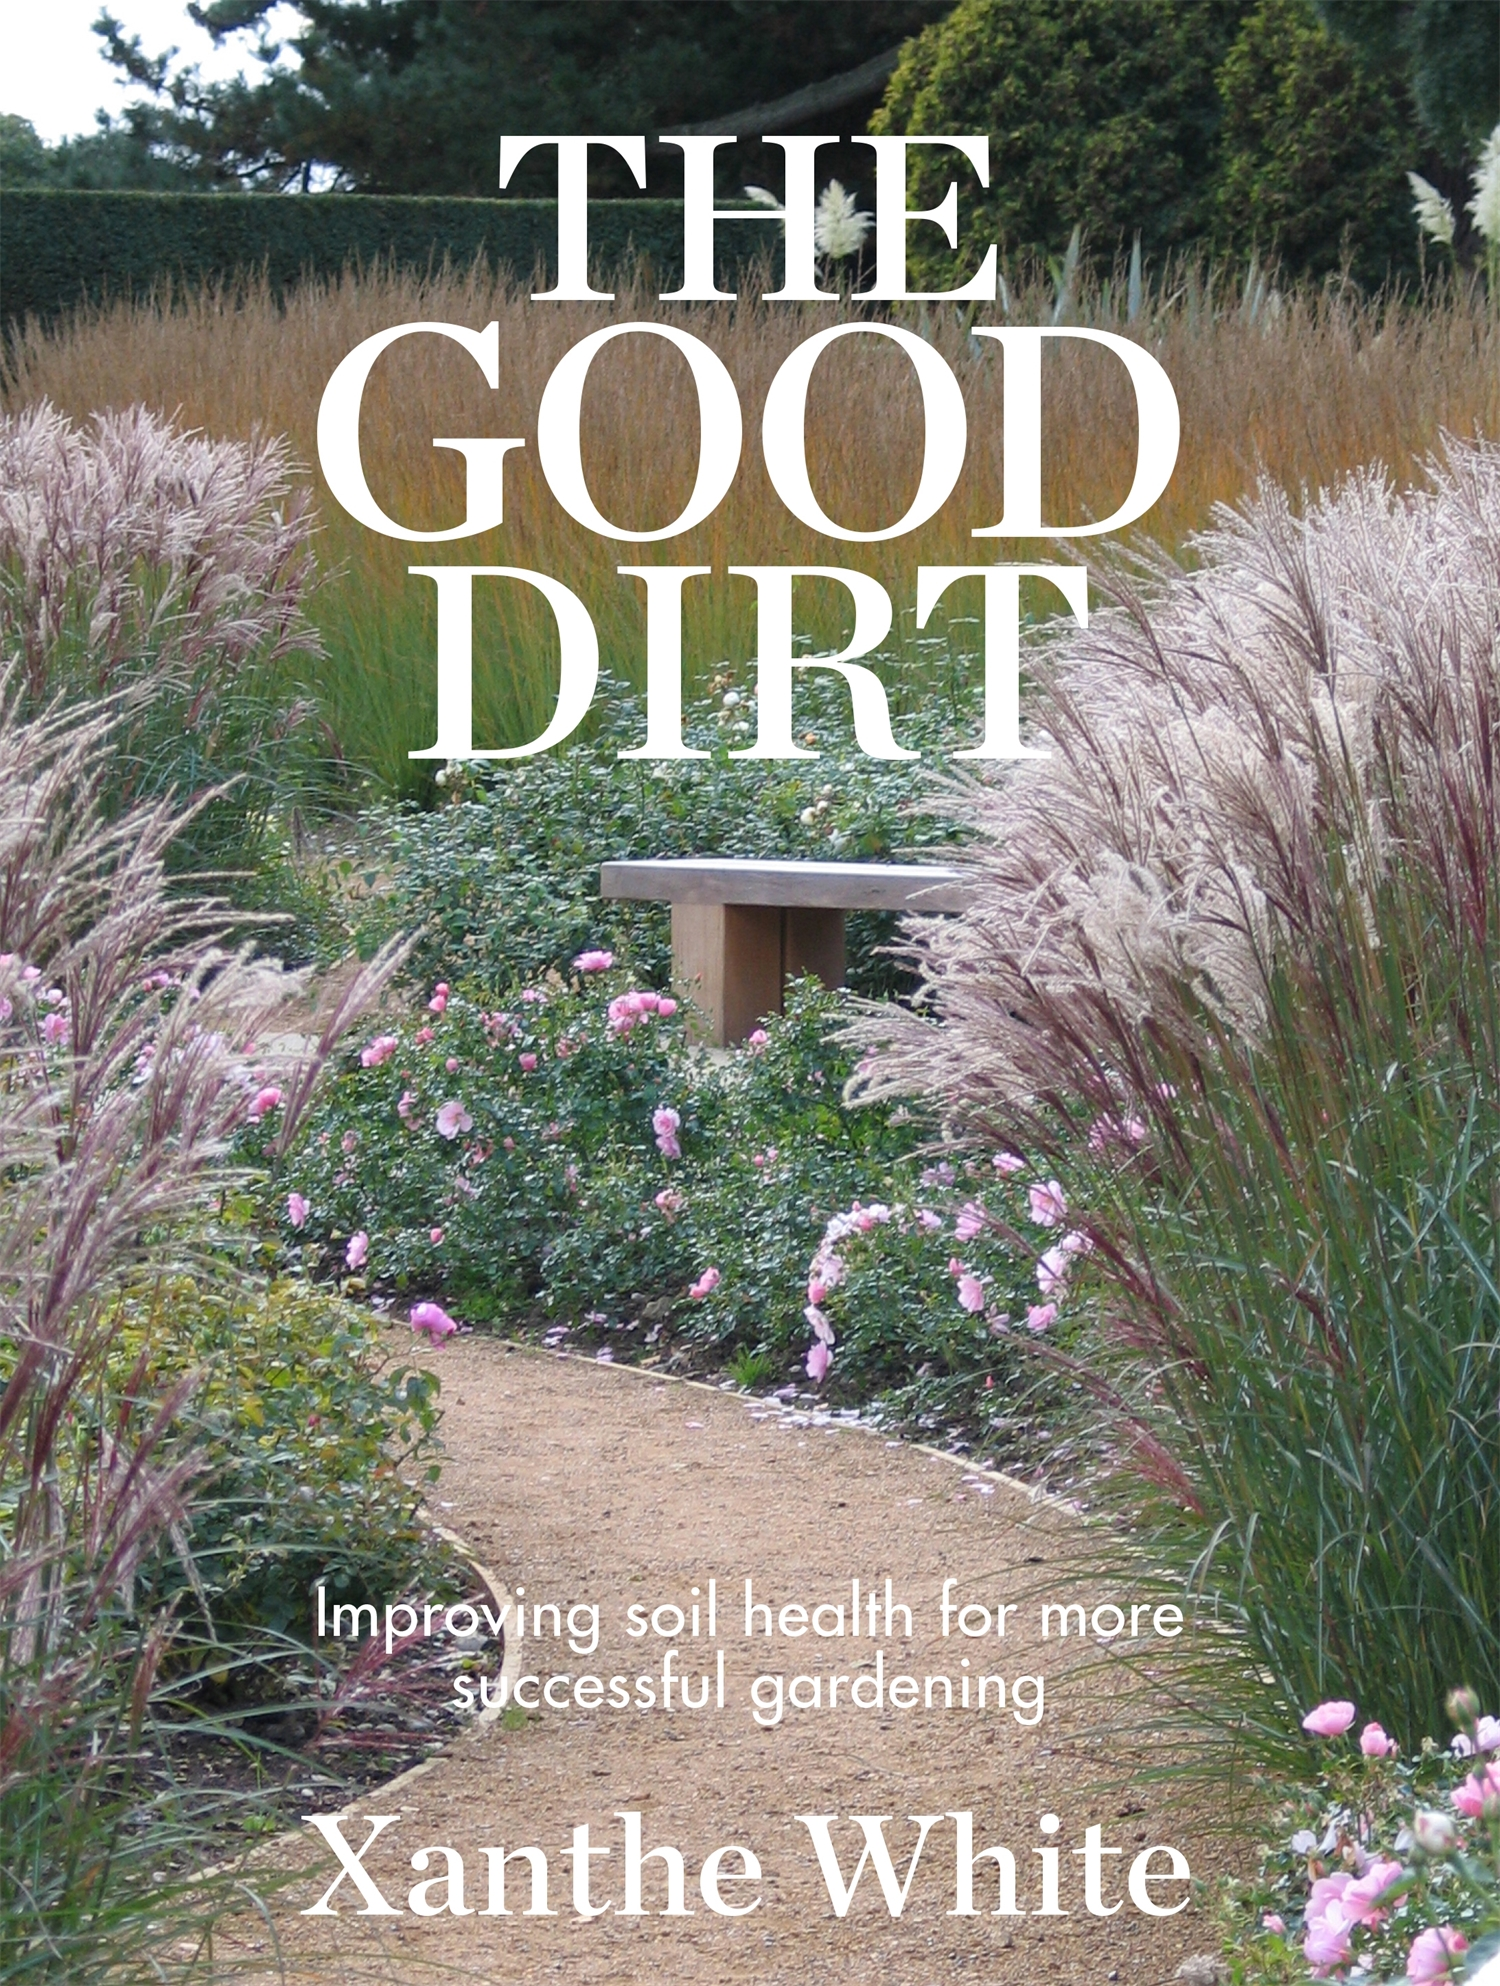 The Good Dirt  Improving soil health for more successful gardening.    In    The Good Dirt ,   landscape designer Xanthe White goes beneath the surface to reveal the secrets to successful gardening  .   As the title suggests, this book is all about the soil we find in our garden and more particularly how we can maximize its growing potential.     If you've ever wondered why some plants thrive in one location but struggle in your own backyard you'll be likely to find explanations in the soil below. Xanthe White examines the five main soil types found in New Zealand and offers advice on how to get the best from each one by working in harmony with nature.    Complete with ingredients guides for each soil type and ideas and design features to enhance its fertility, this is an essential companion for anyone looking to establish a new garden or improve their existing one.    Random House NZ 2016